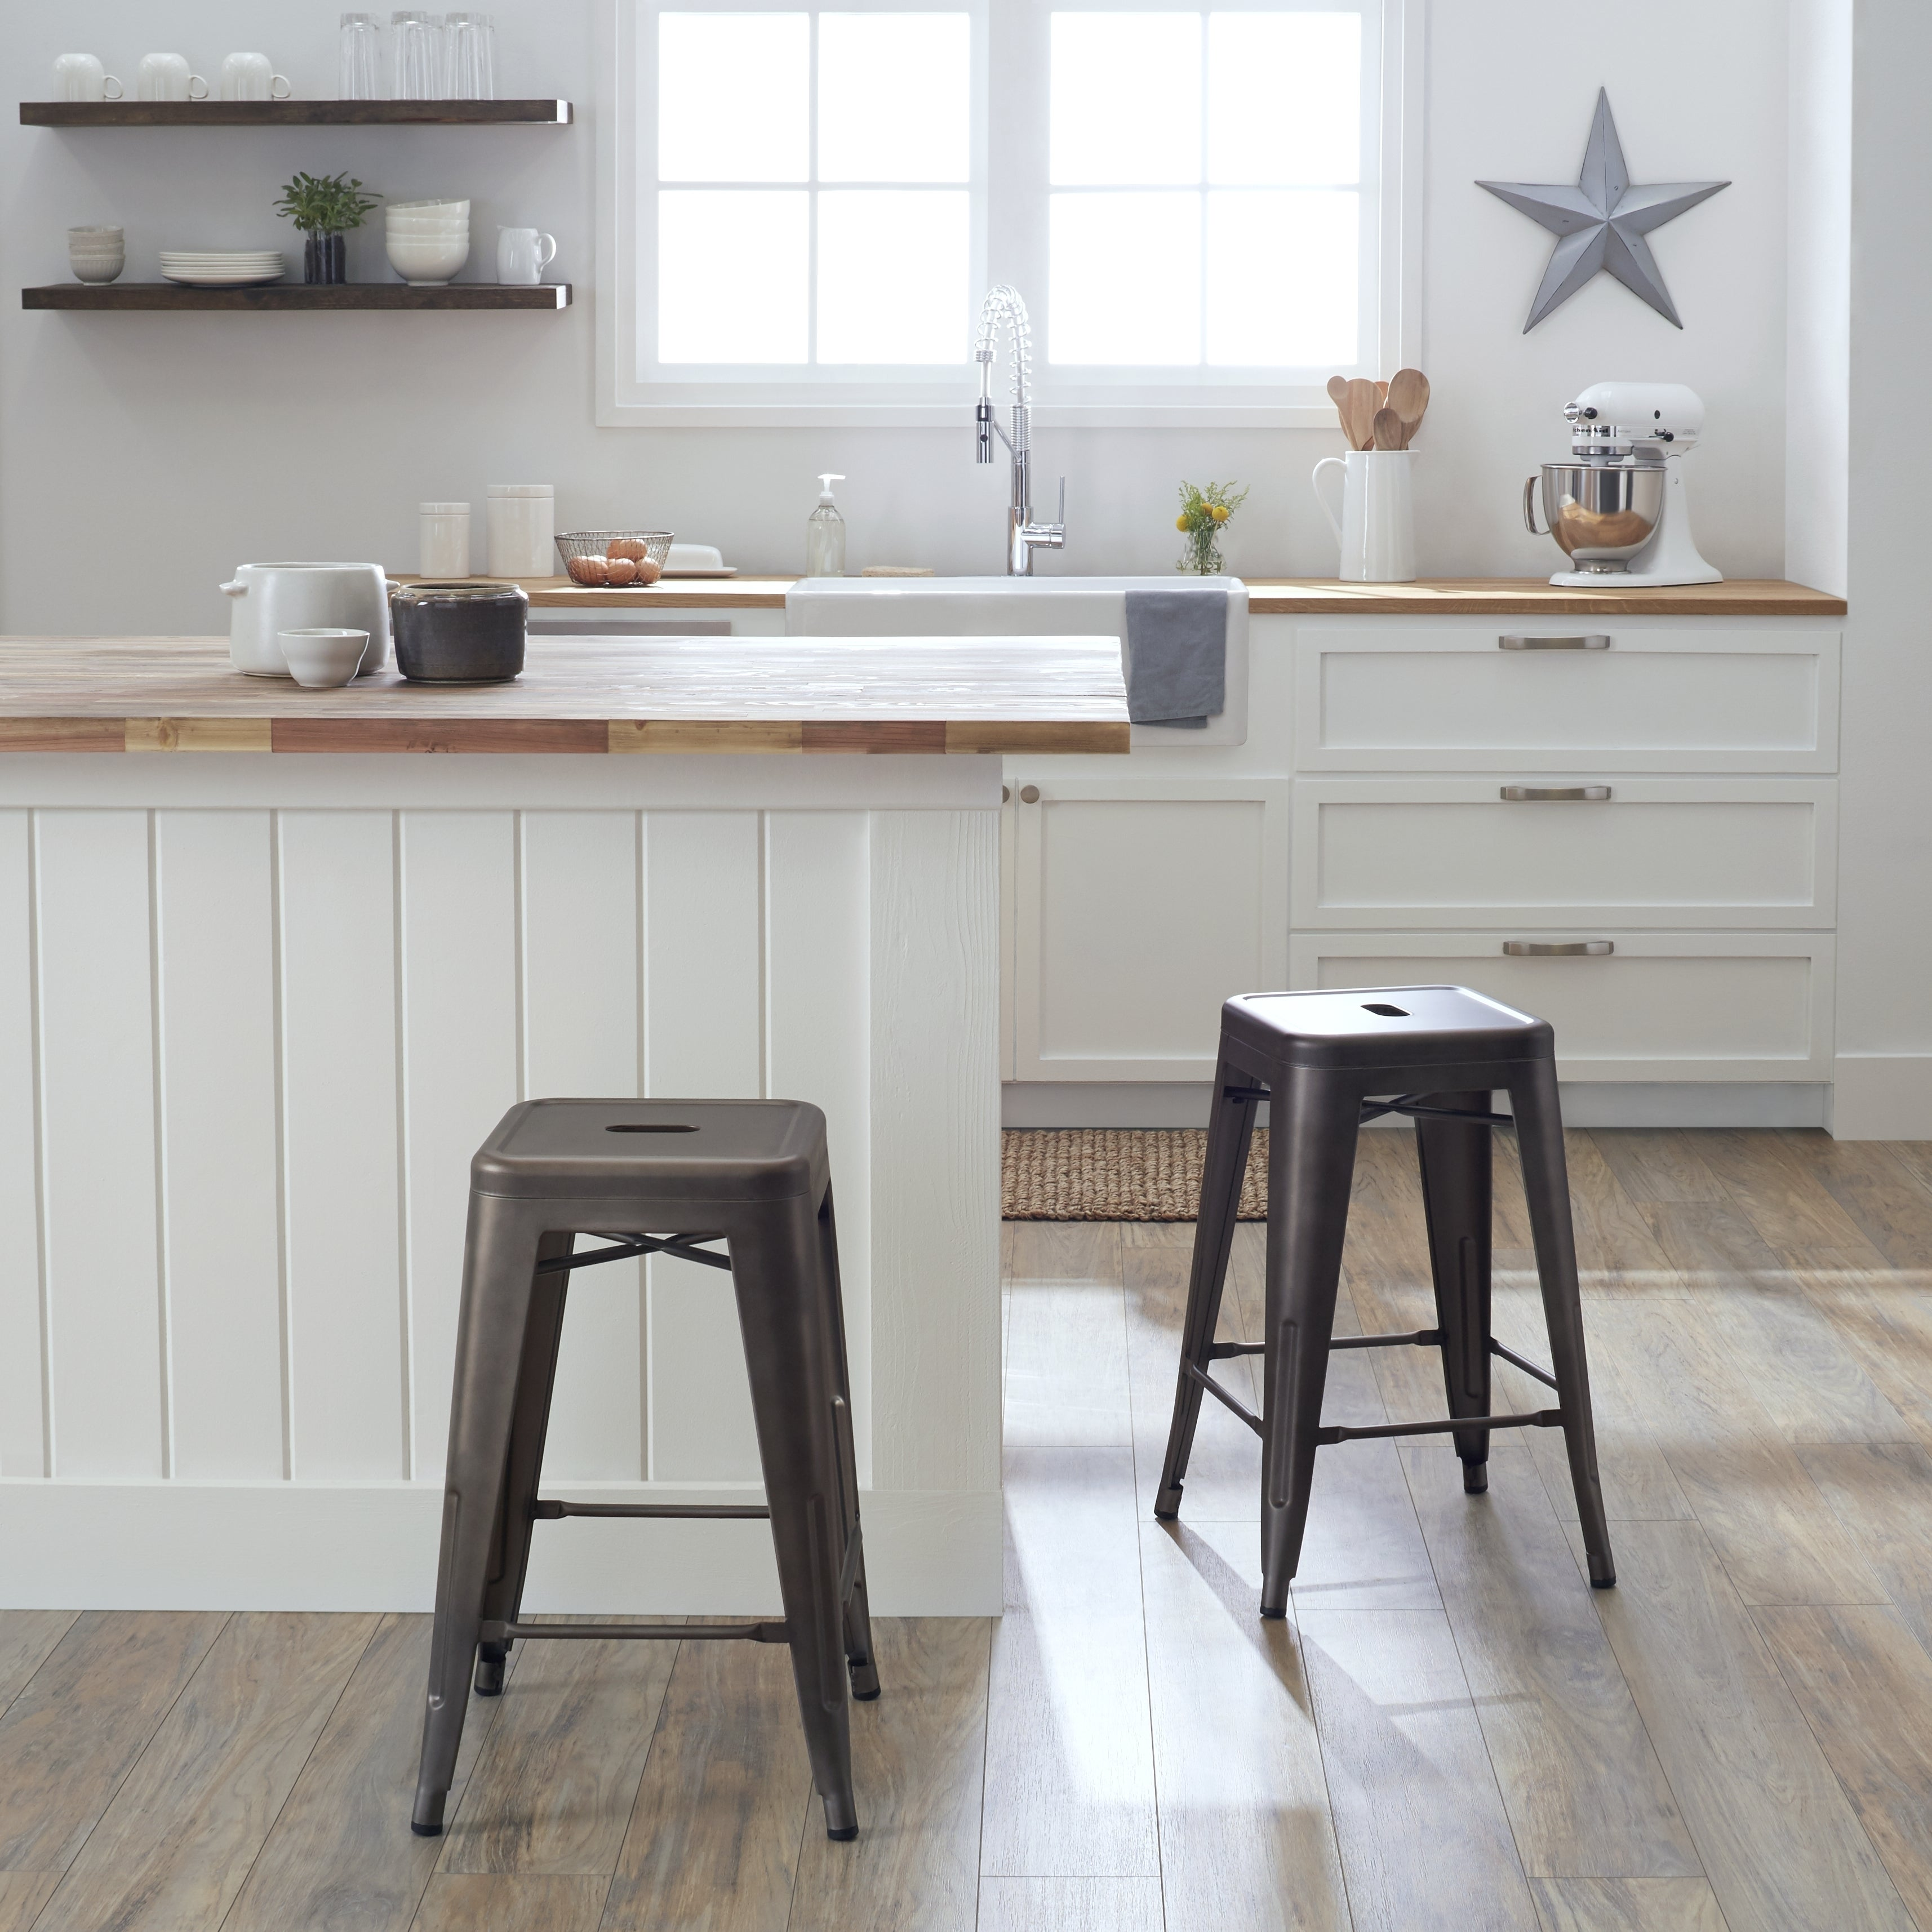 Baroque Backless Counter Stools In Kitchen Traditional